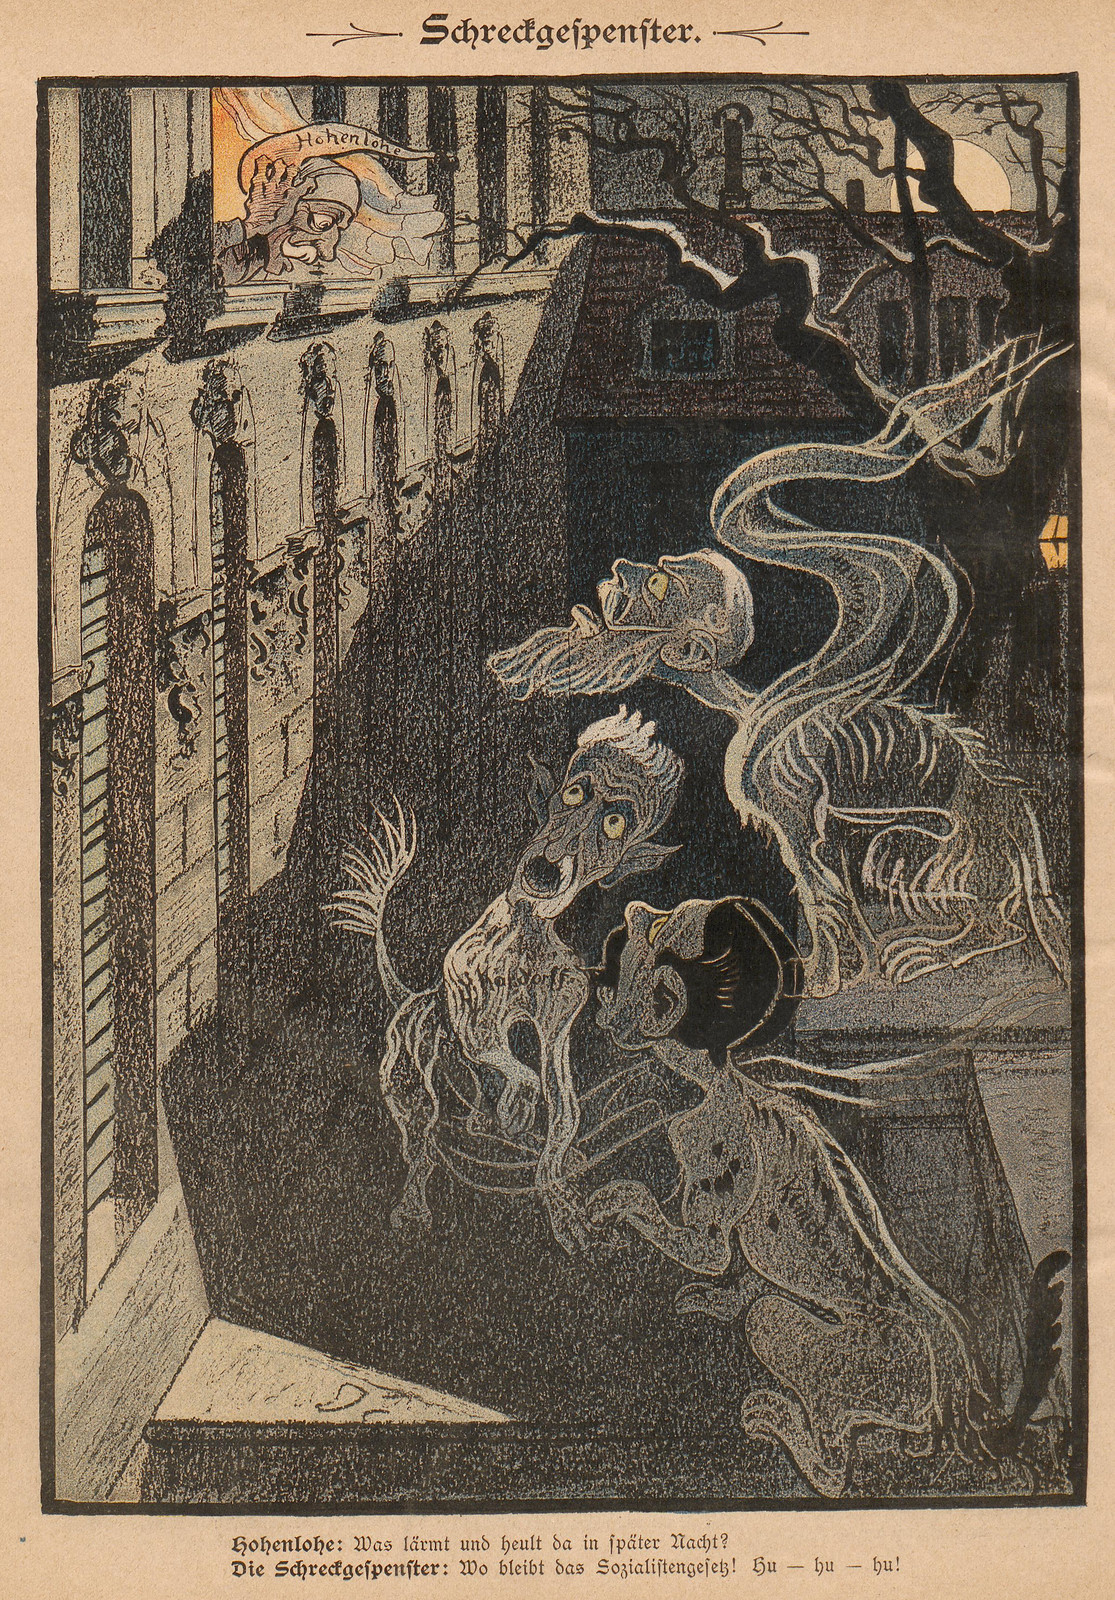 Unsigned - Fright Spirits, 1899